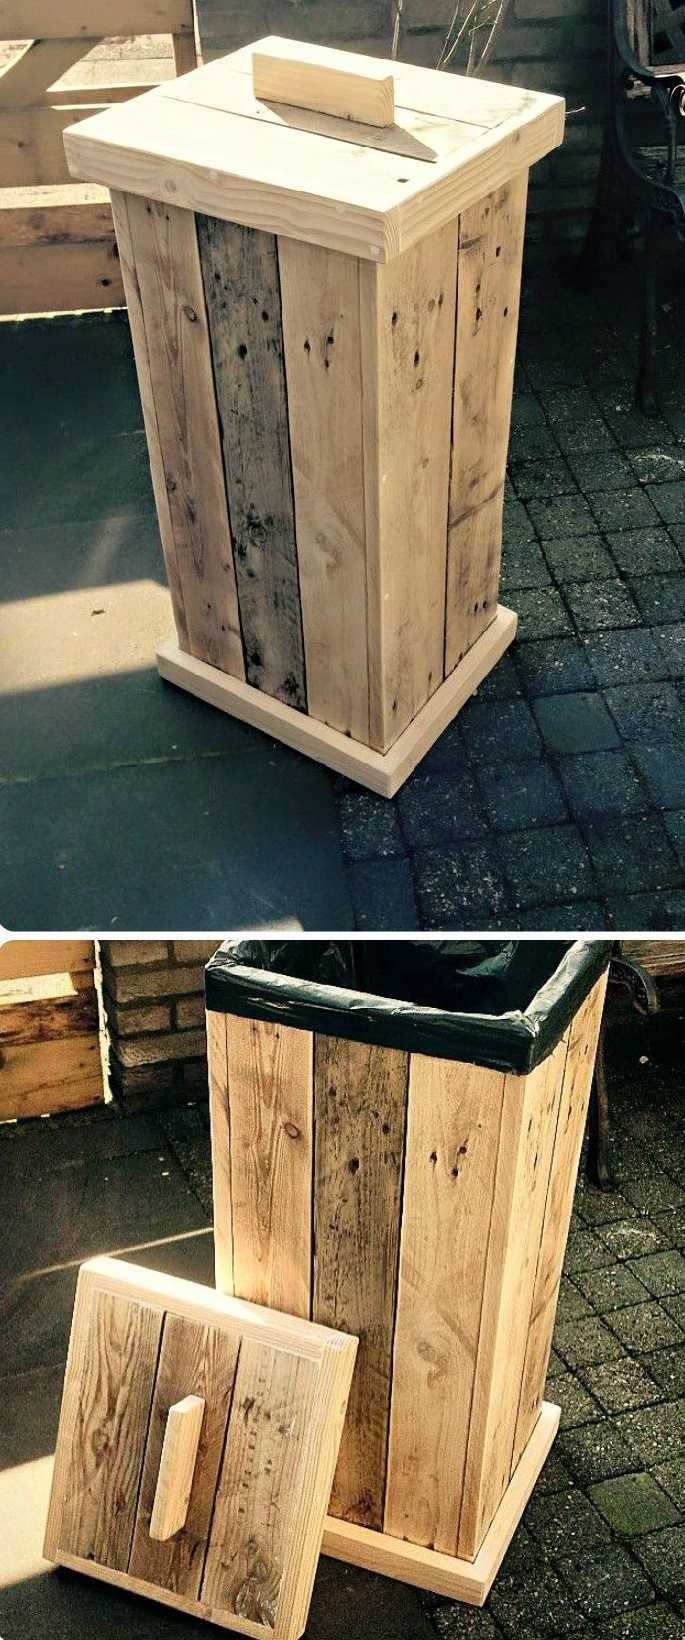 AD-Furniture-You-Can-Create-Using-Old-Pallets-05